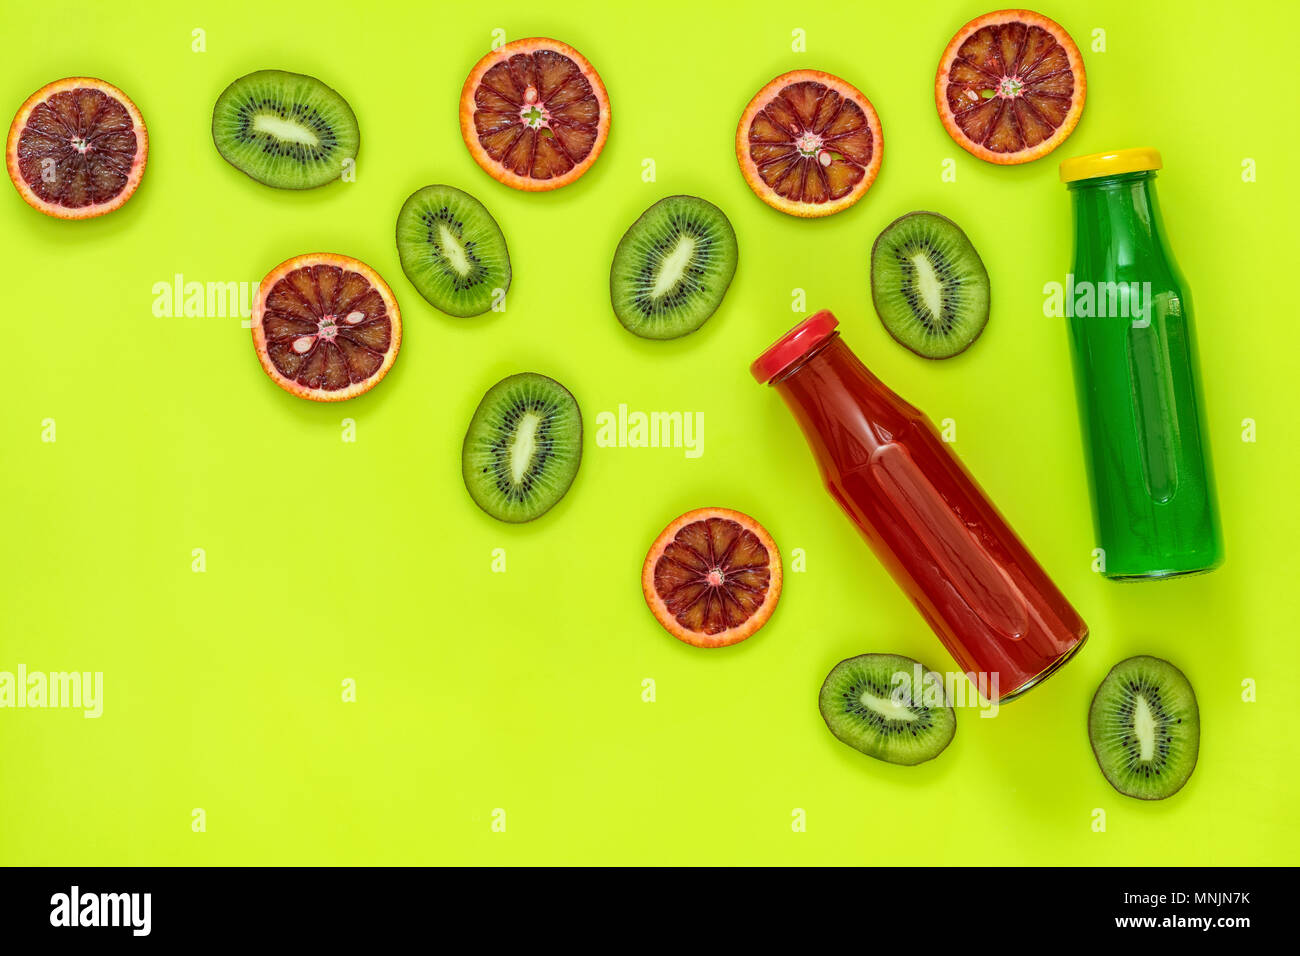 Beautiful food art background.  Green and red juice in glass bottles sliced kiwi and blood orange fruit on bright green surface. - Stock Image